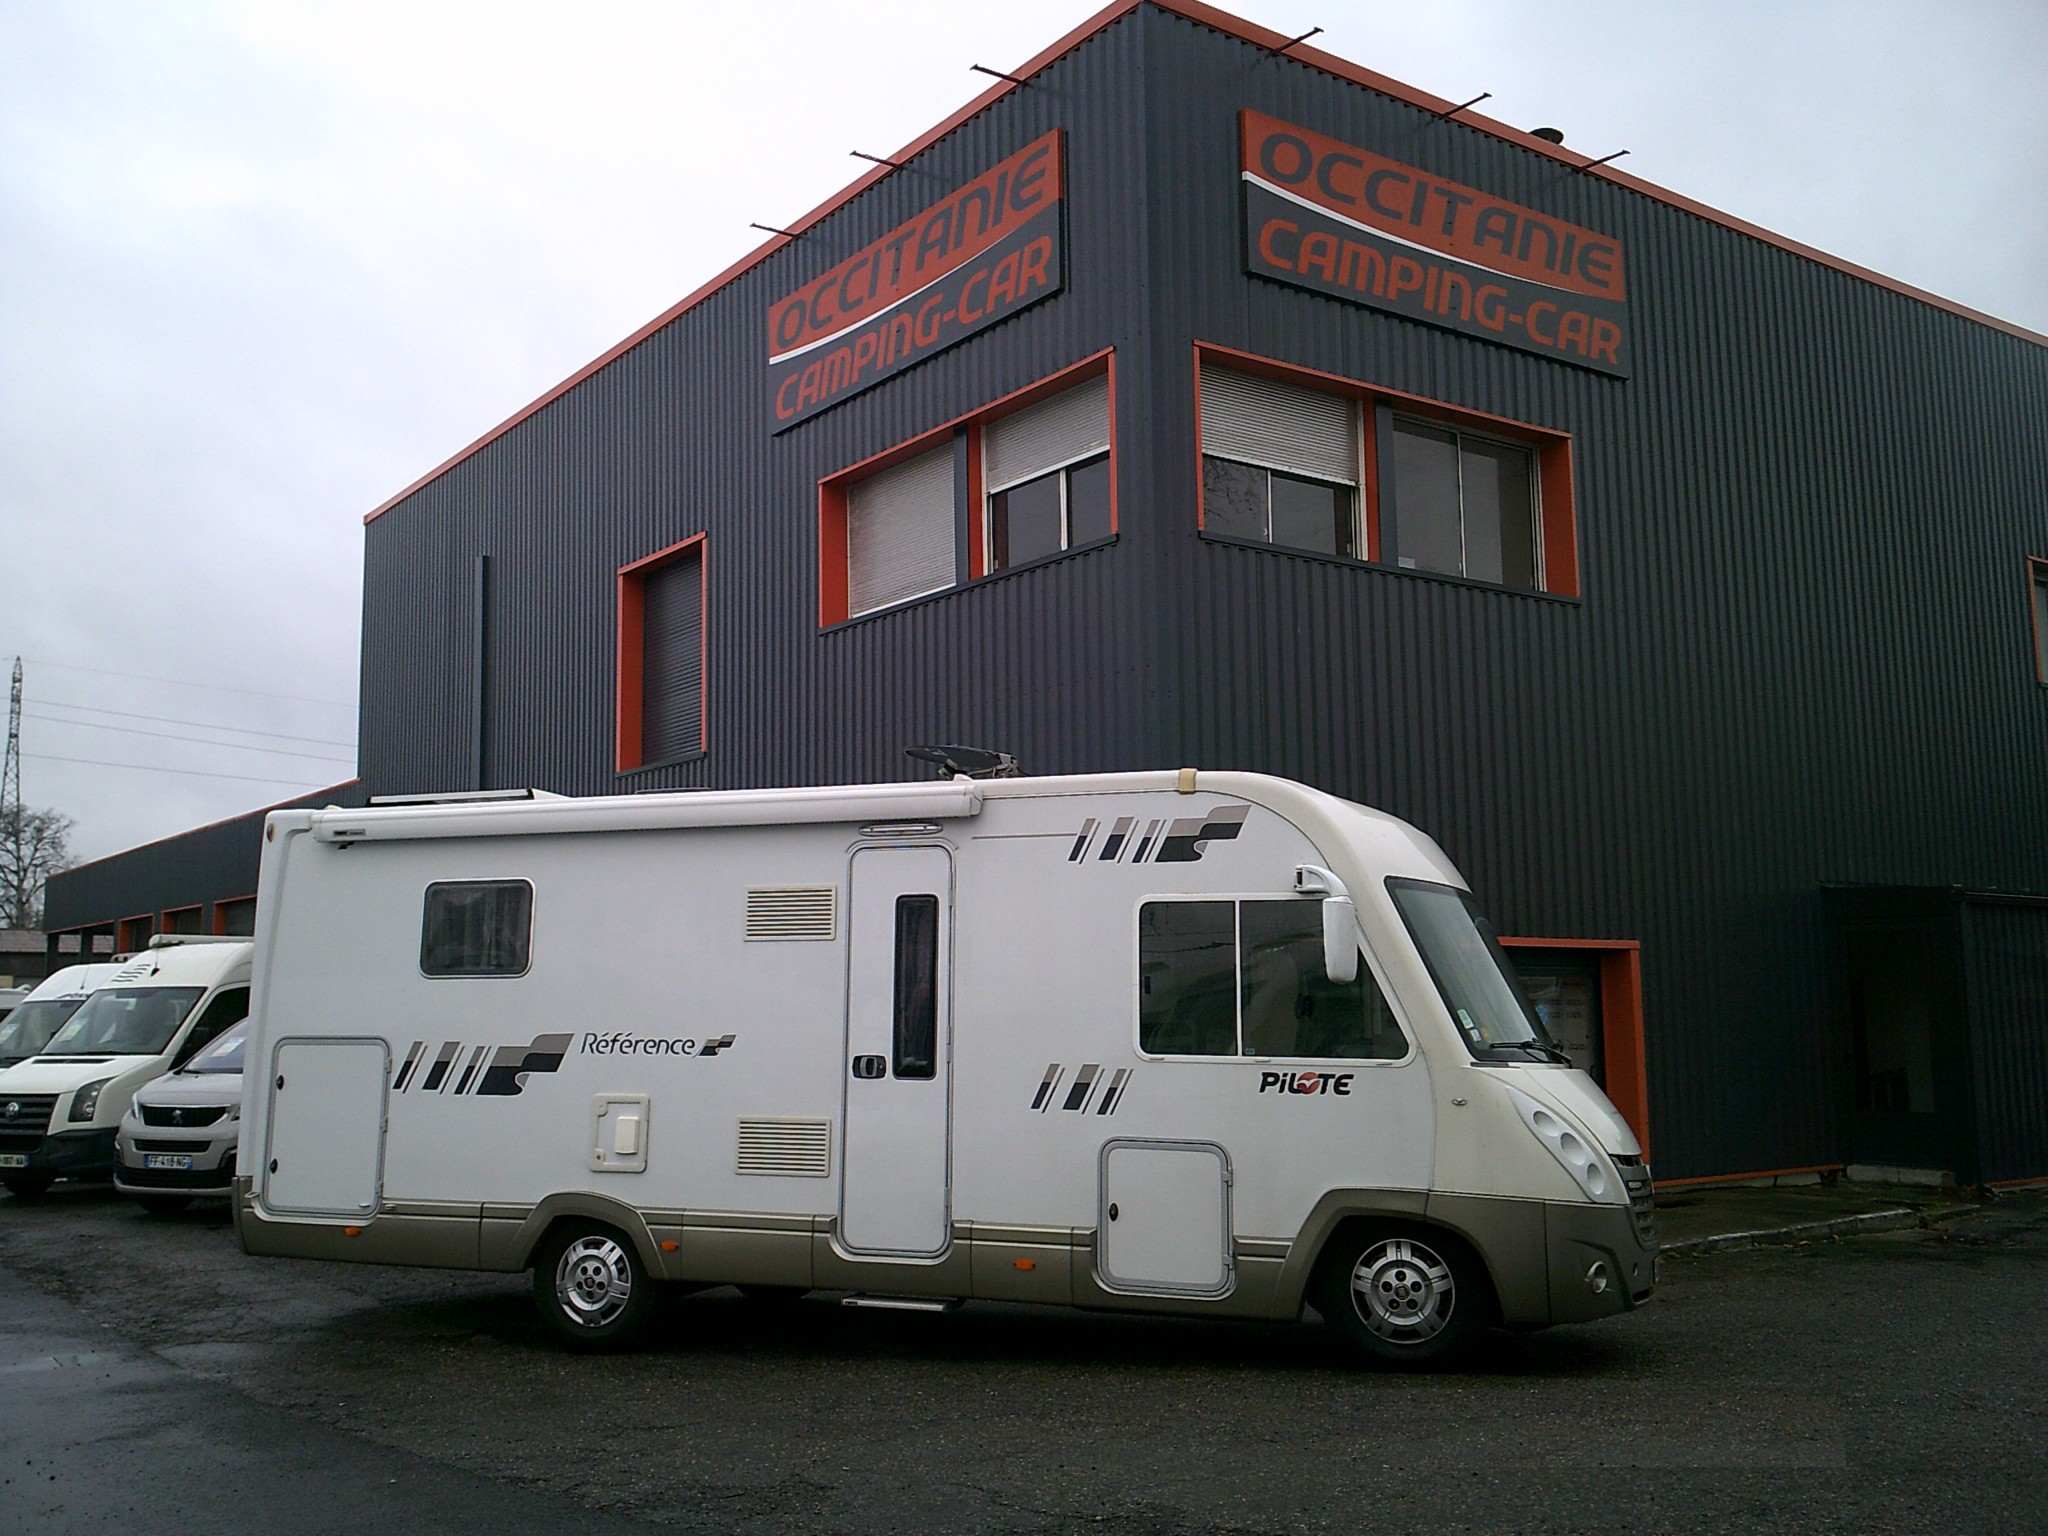 Camping-car PILOTE REFERENCE G 740